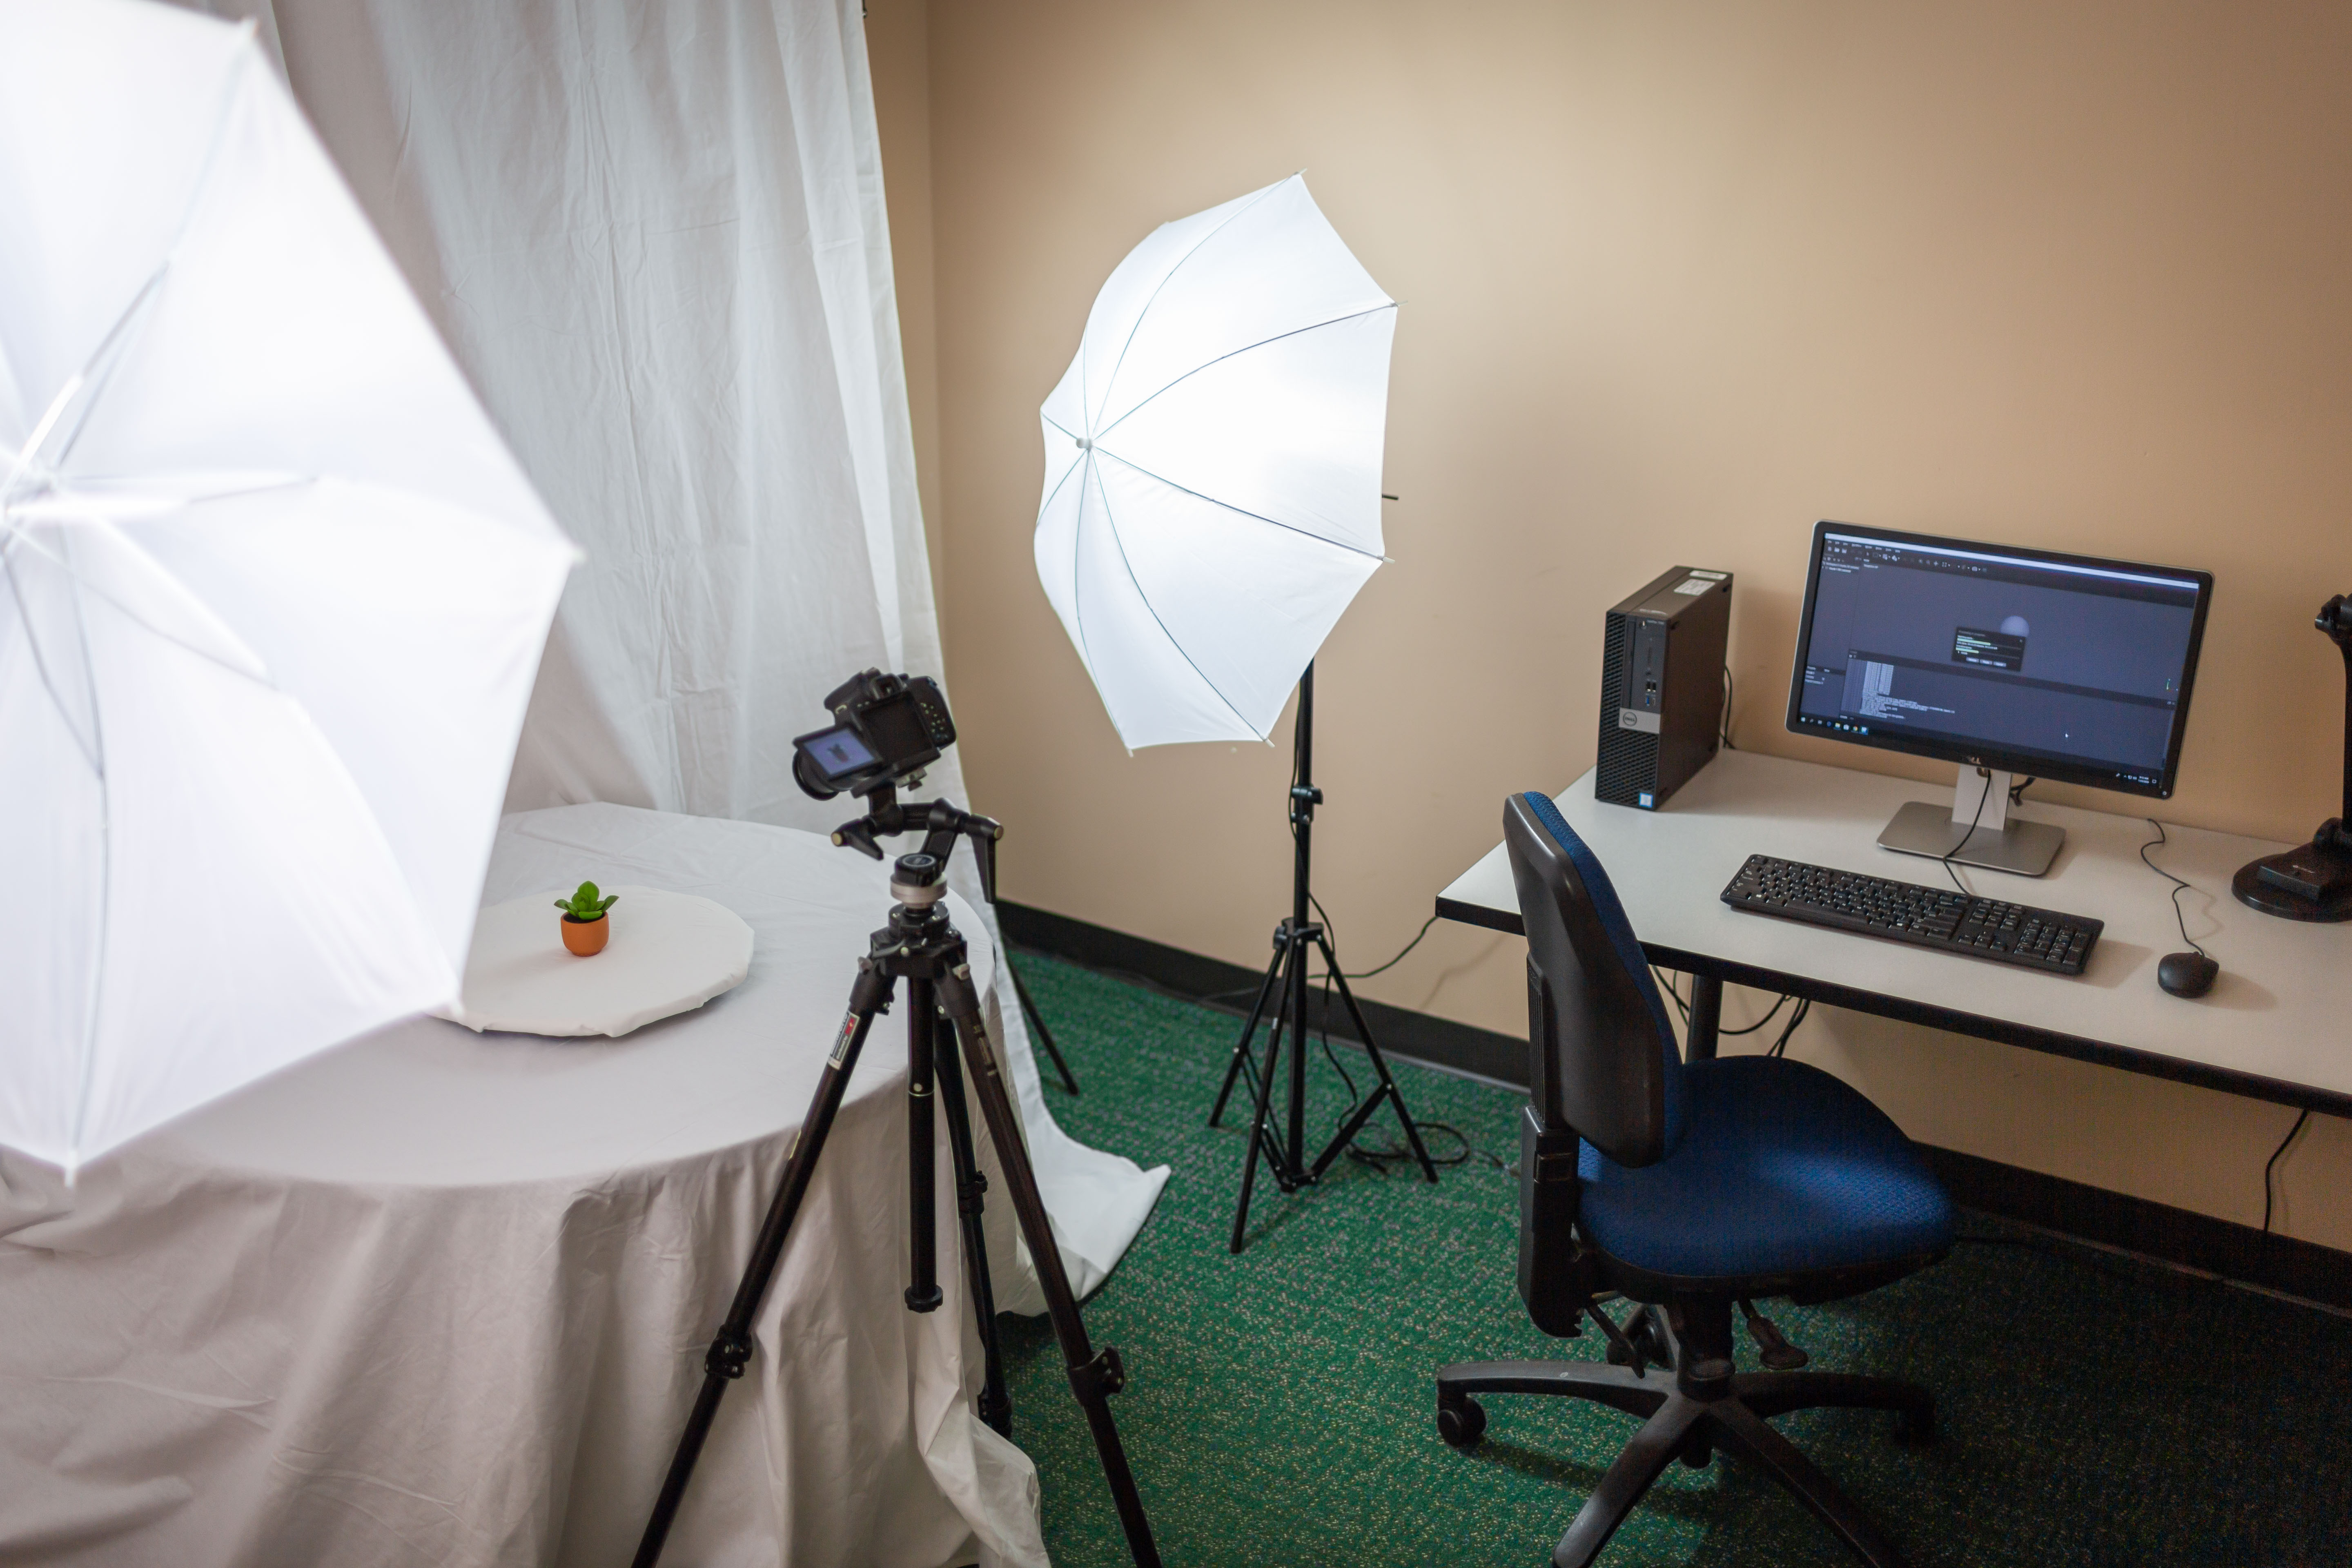 Photogrammetry Studio setup